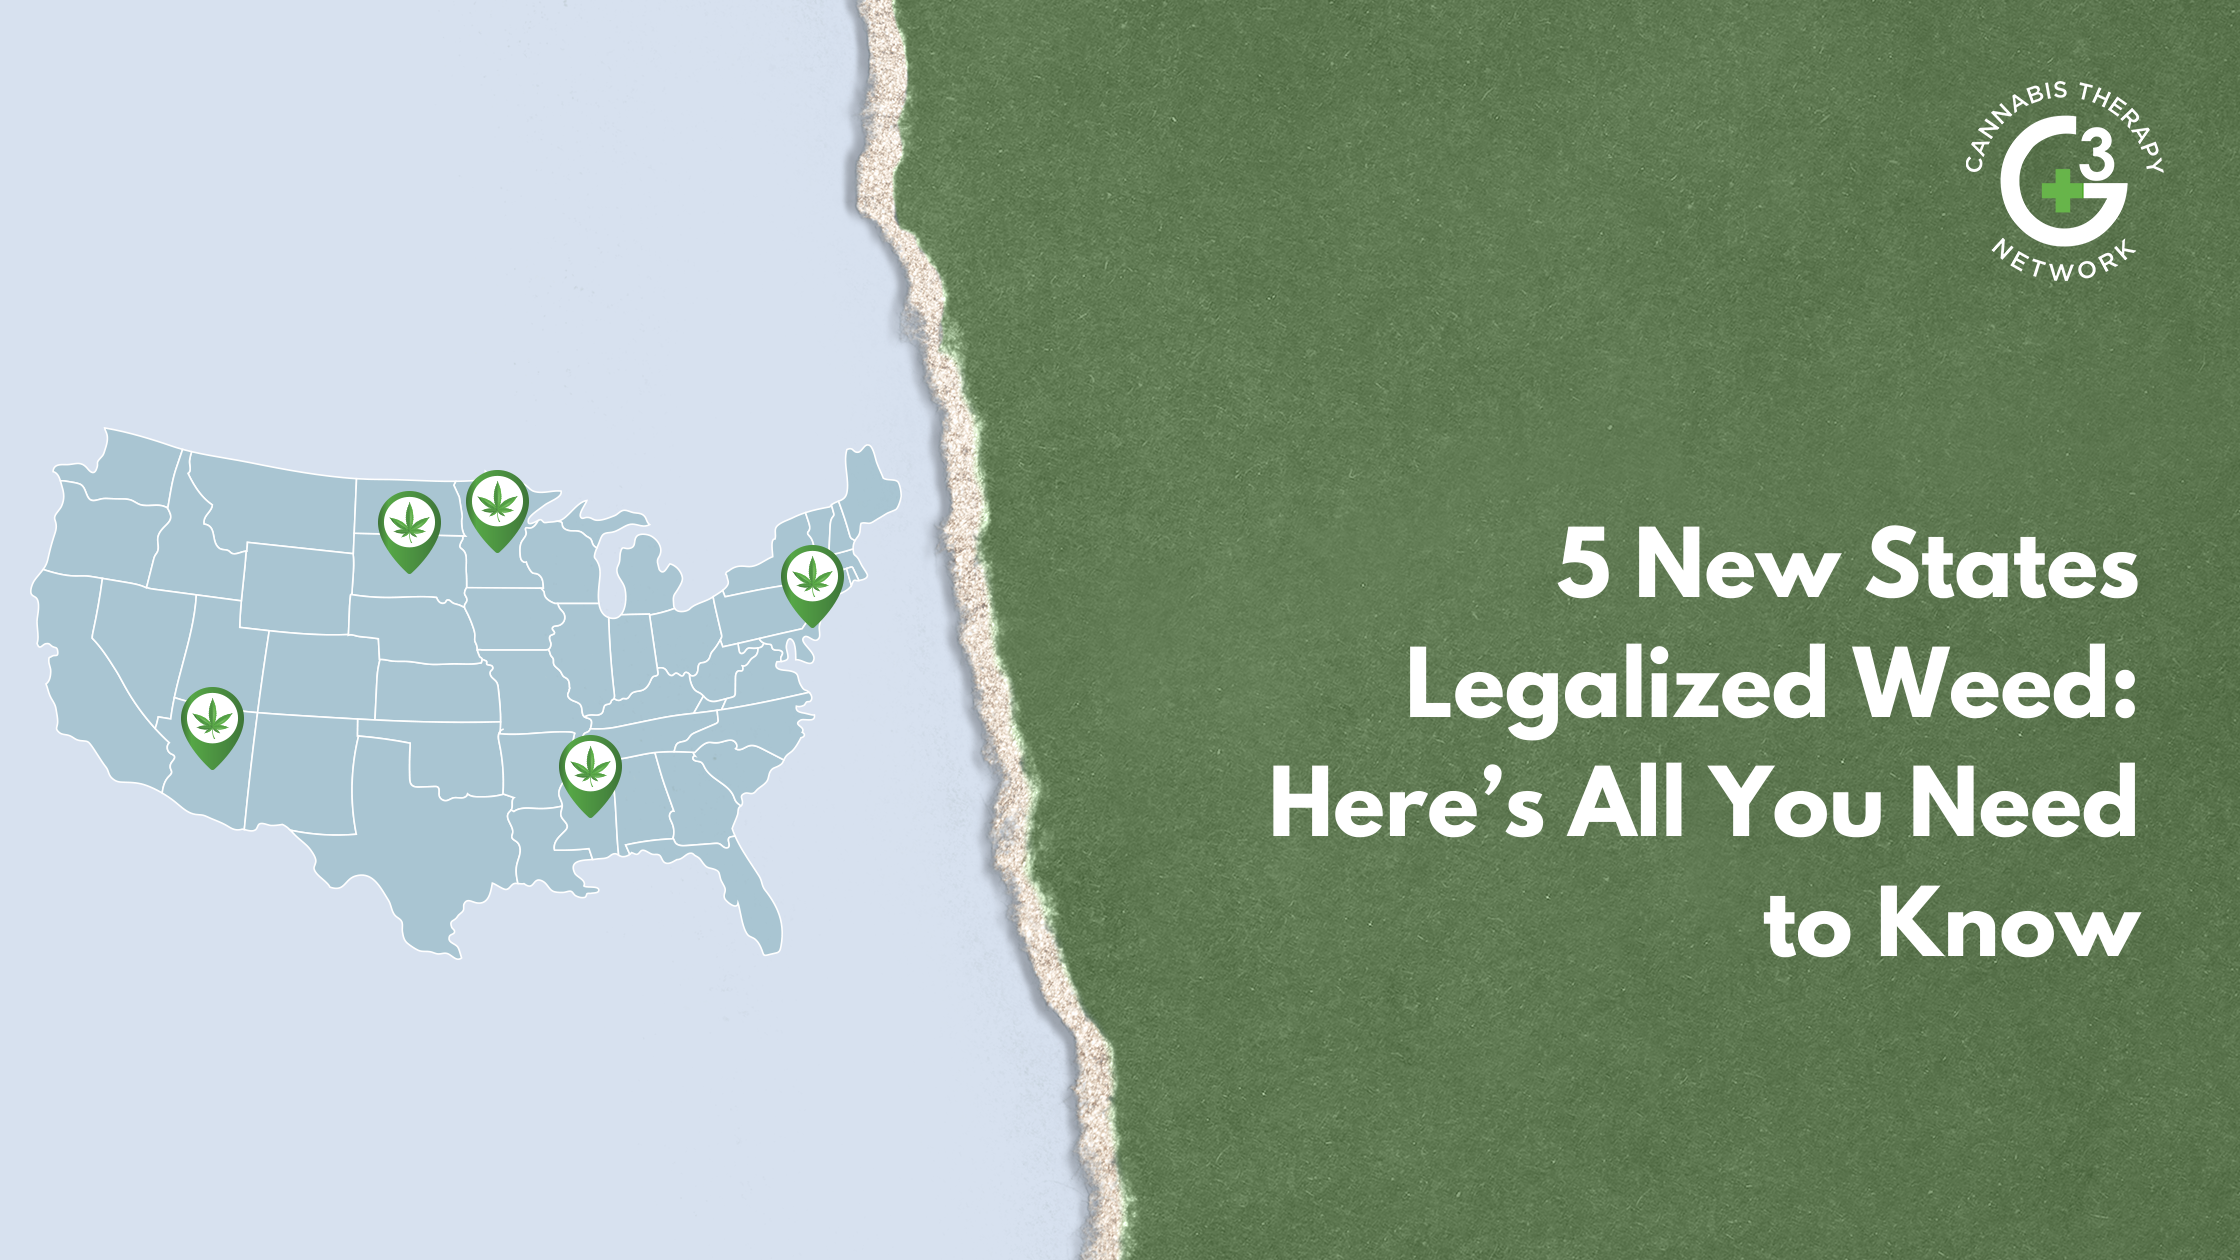 What you need to know about the 5 new states that legalized recreational and medical marijuana use